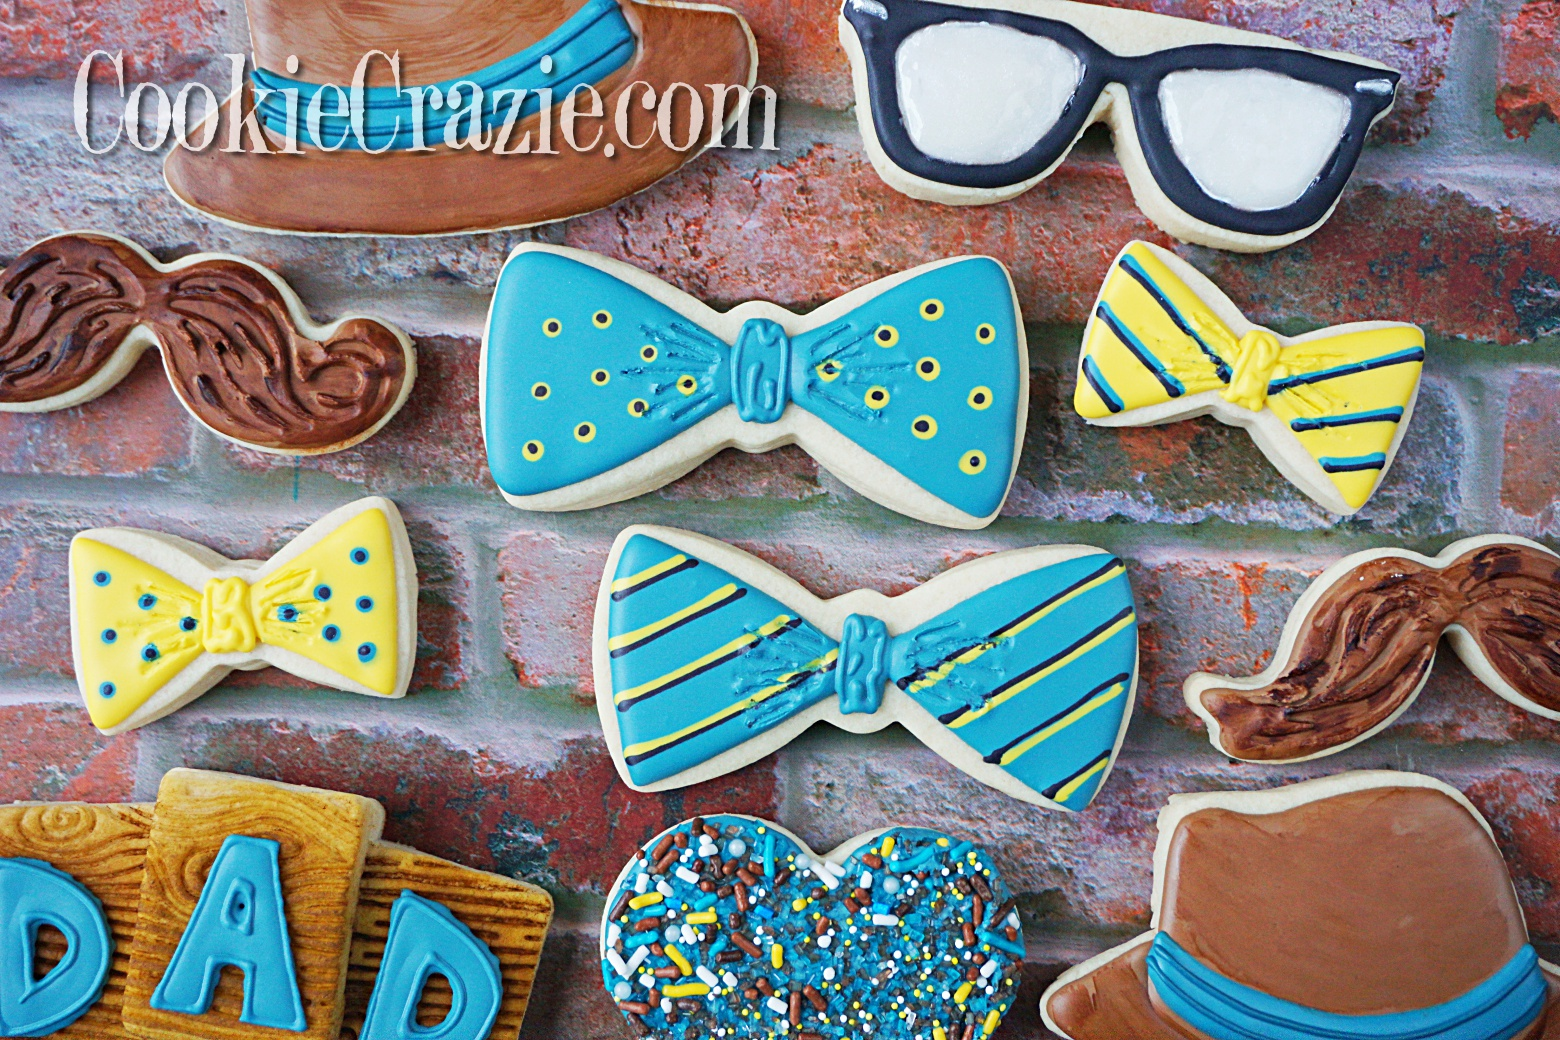 Bowtie Decorated Sugar Cookies YouTube video  HERE        Bowtie cutter found  HERE